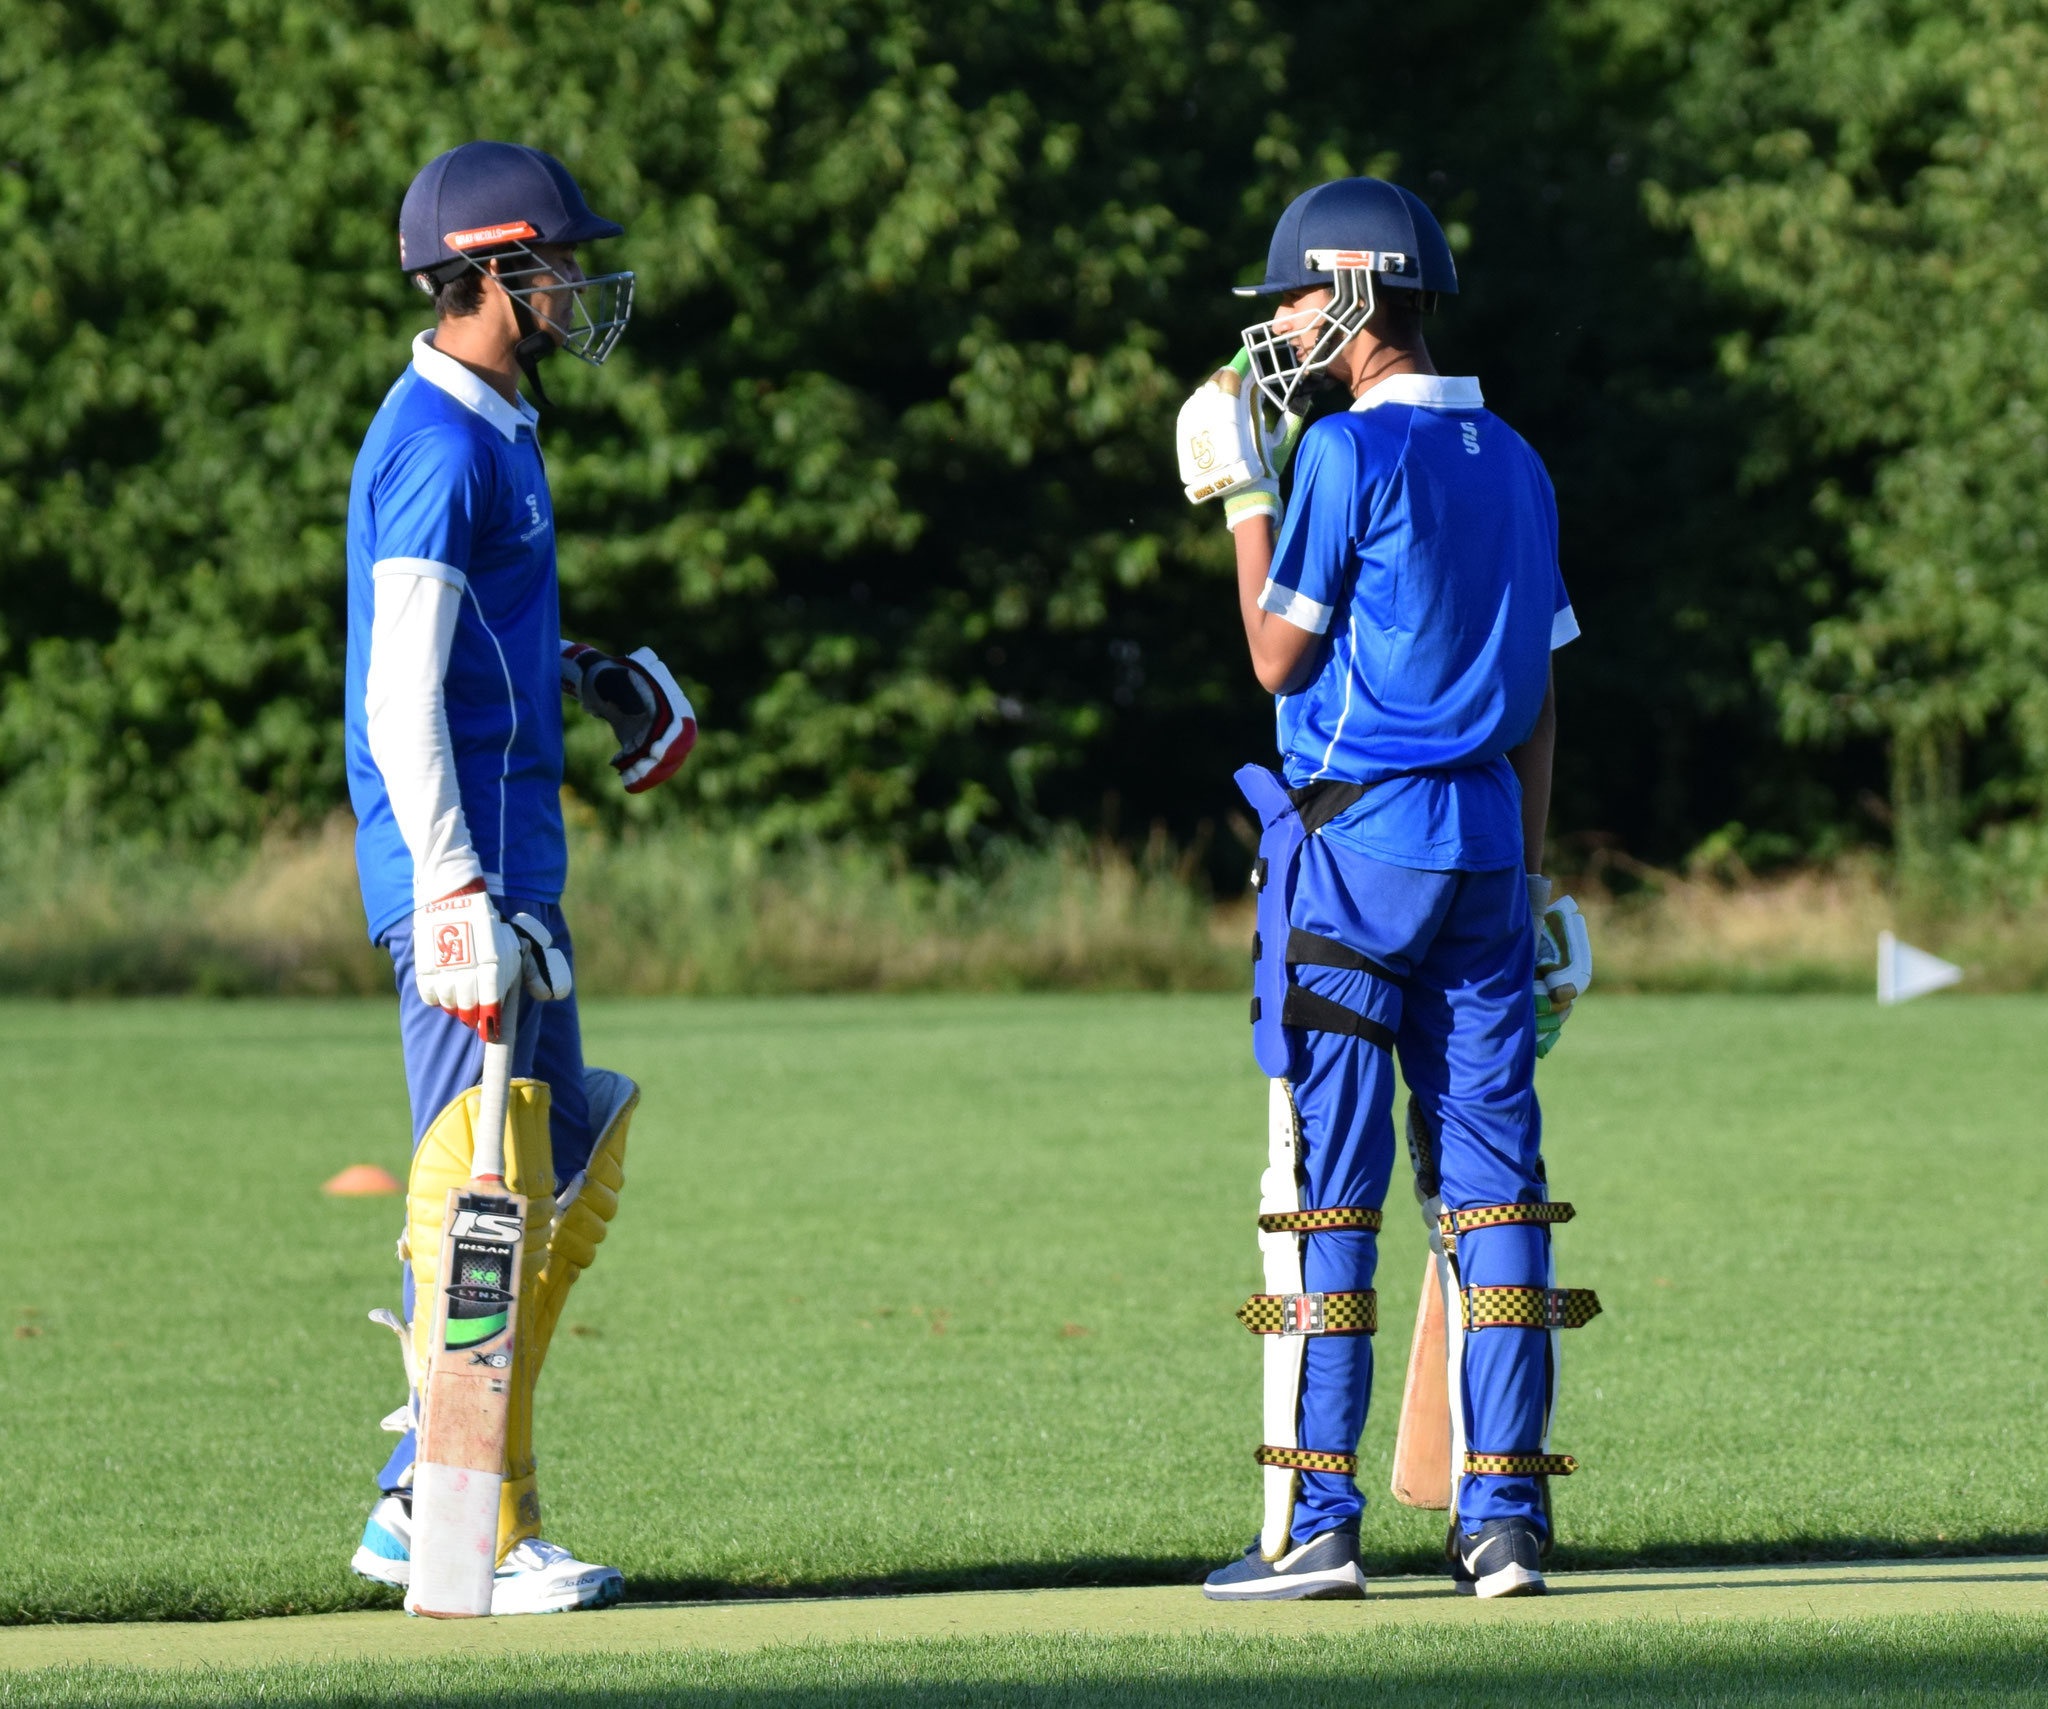 Danyal joined Latif but did not manage to face a ball. Zurich Crickets, to their credit, did bat out the 20 overs though, finishing on 108 for 8.